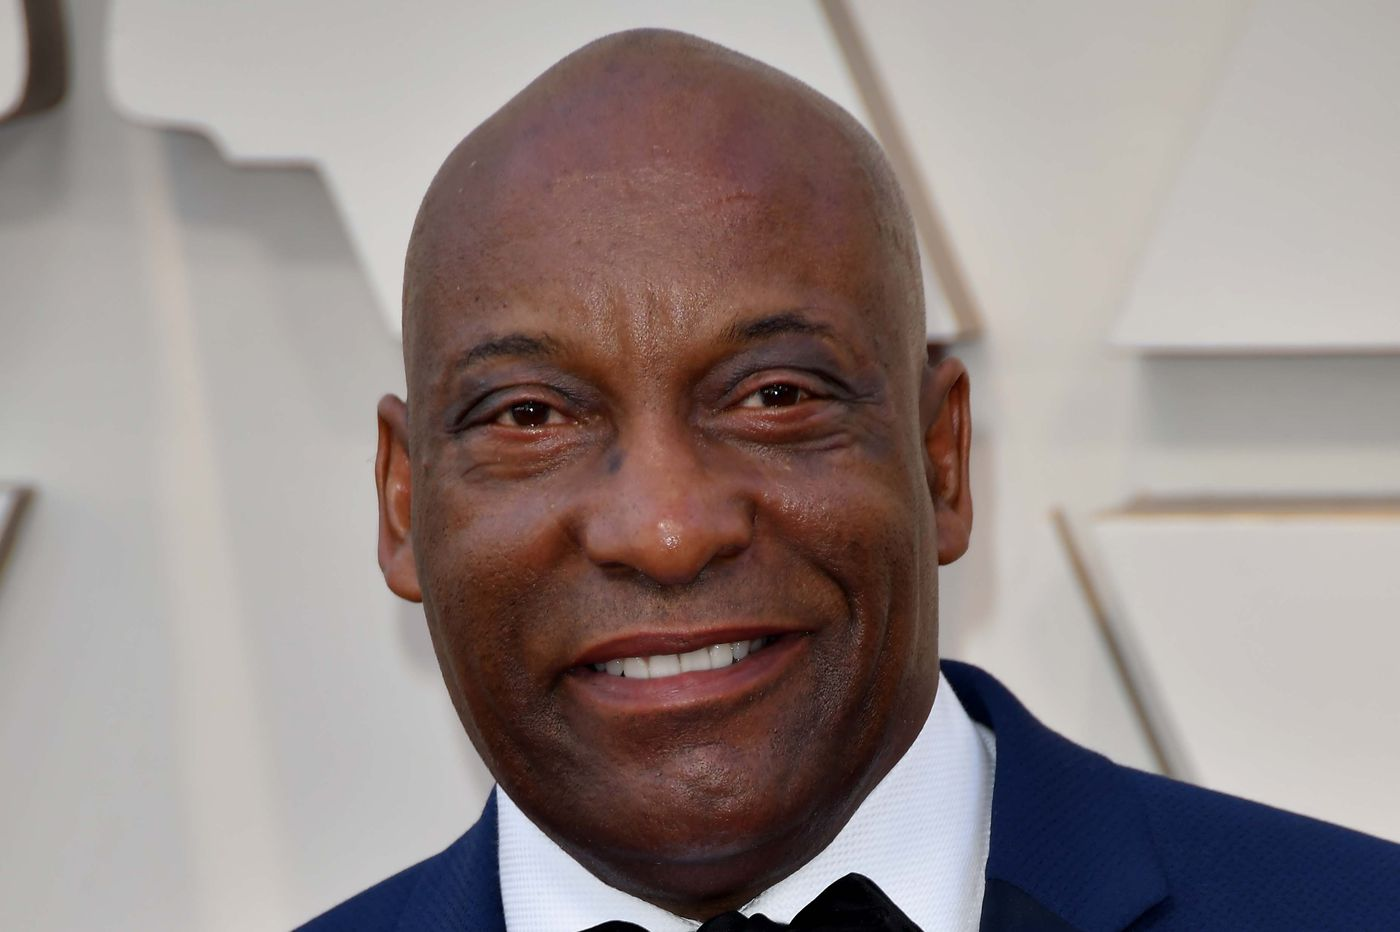 John Singleton had 'leg problems' on a long flight before his stroke. That was a red flag.